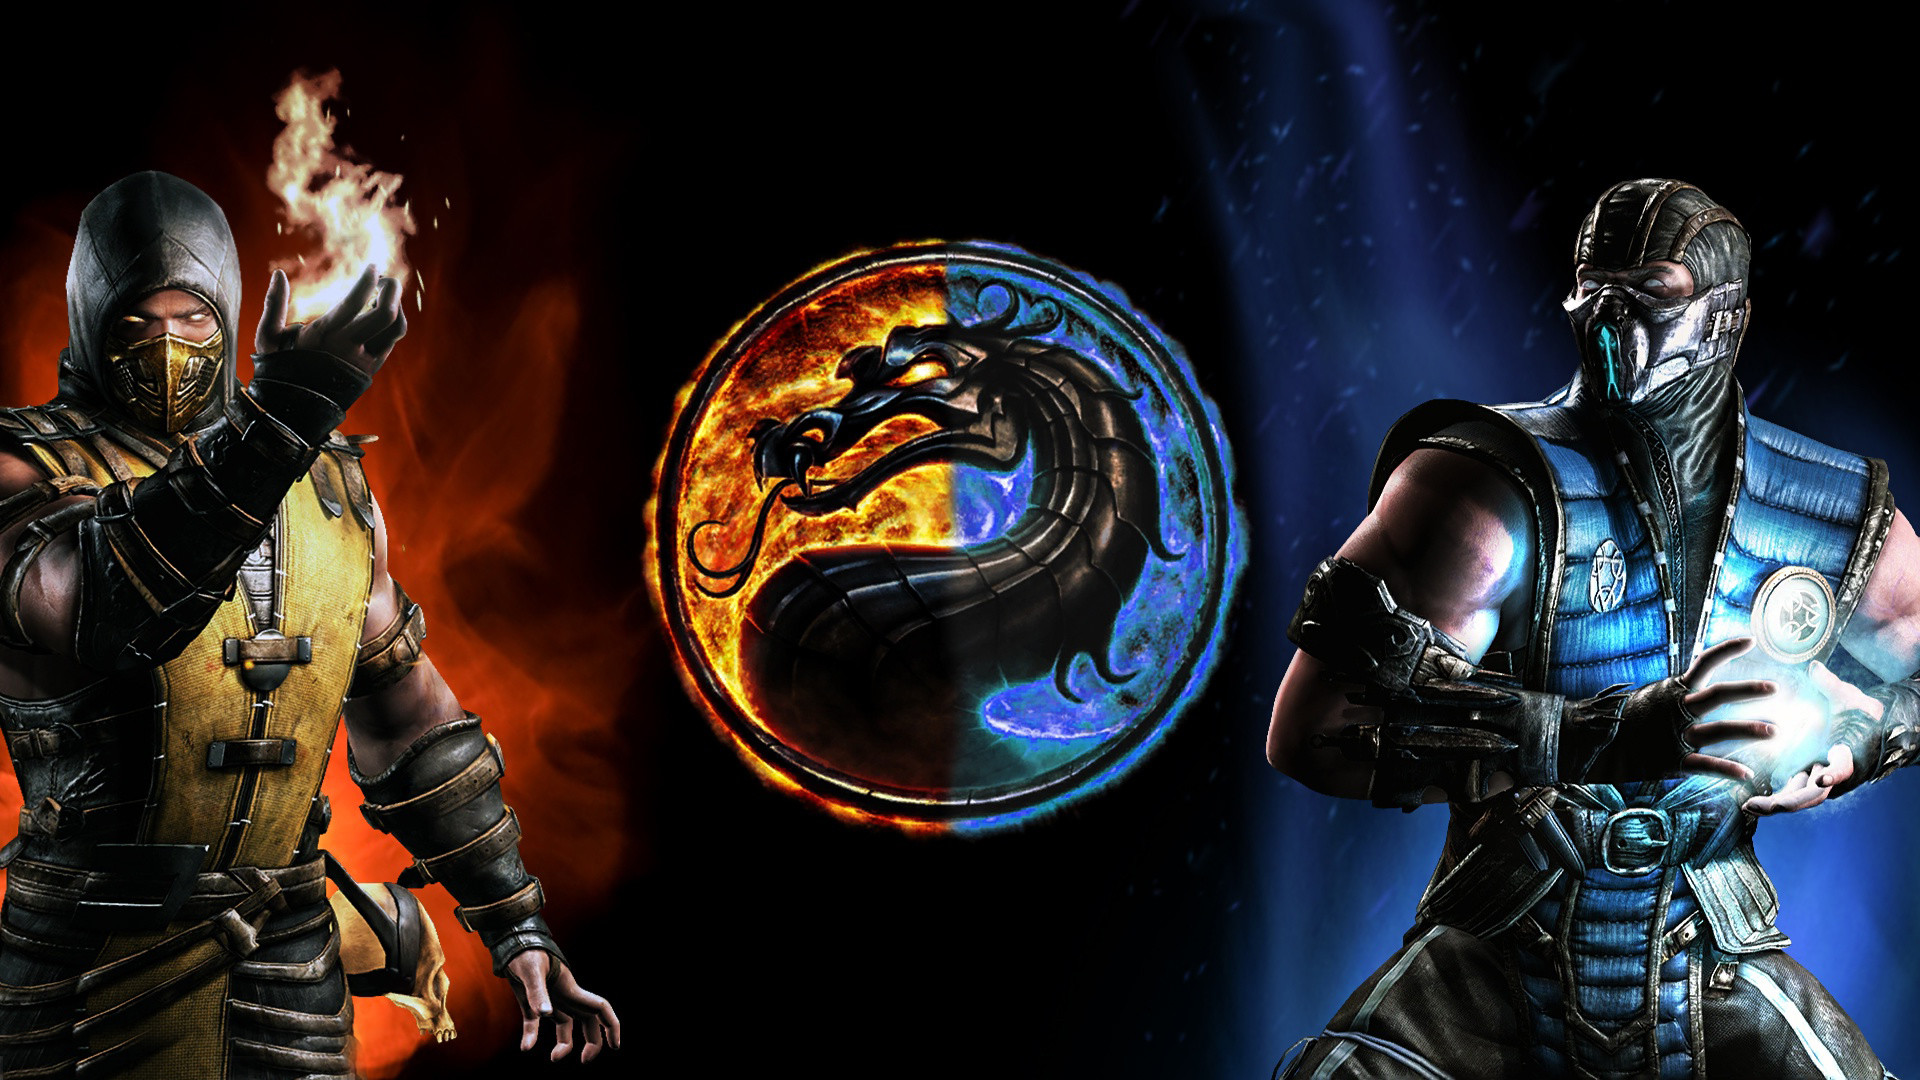 Mortal Kombat X Background: Mortal Kombat Scorpion Vs Sub Zero Wallpaper ·① WallpaperTag